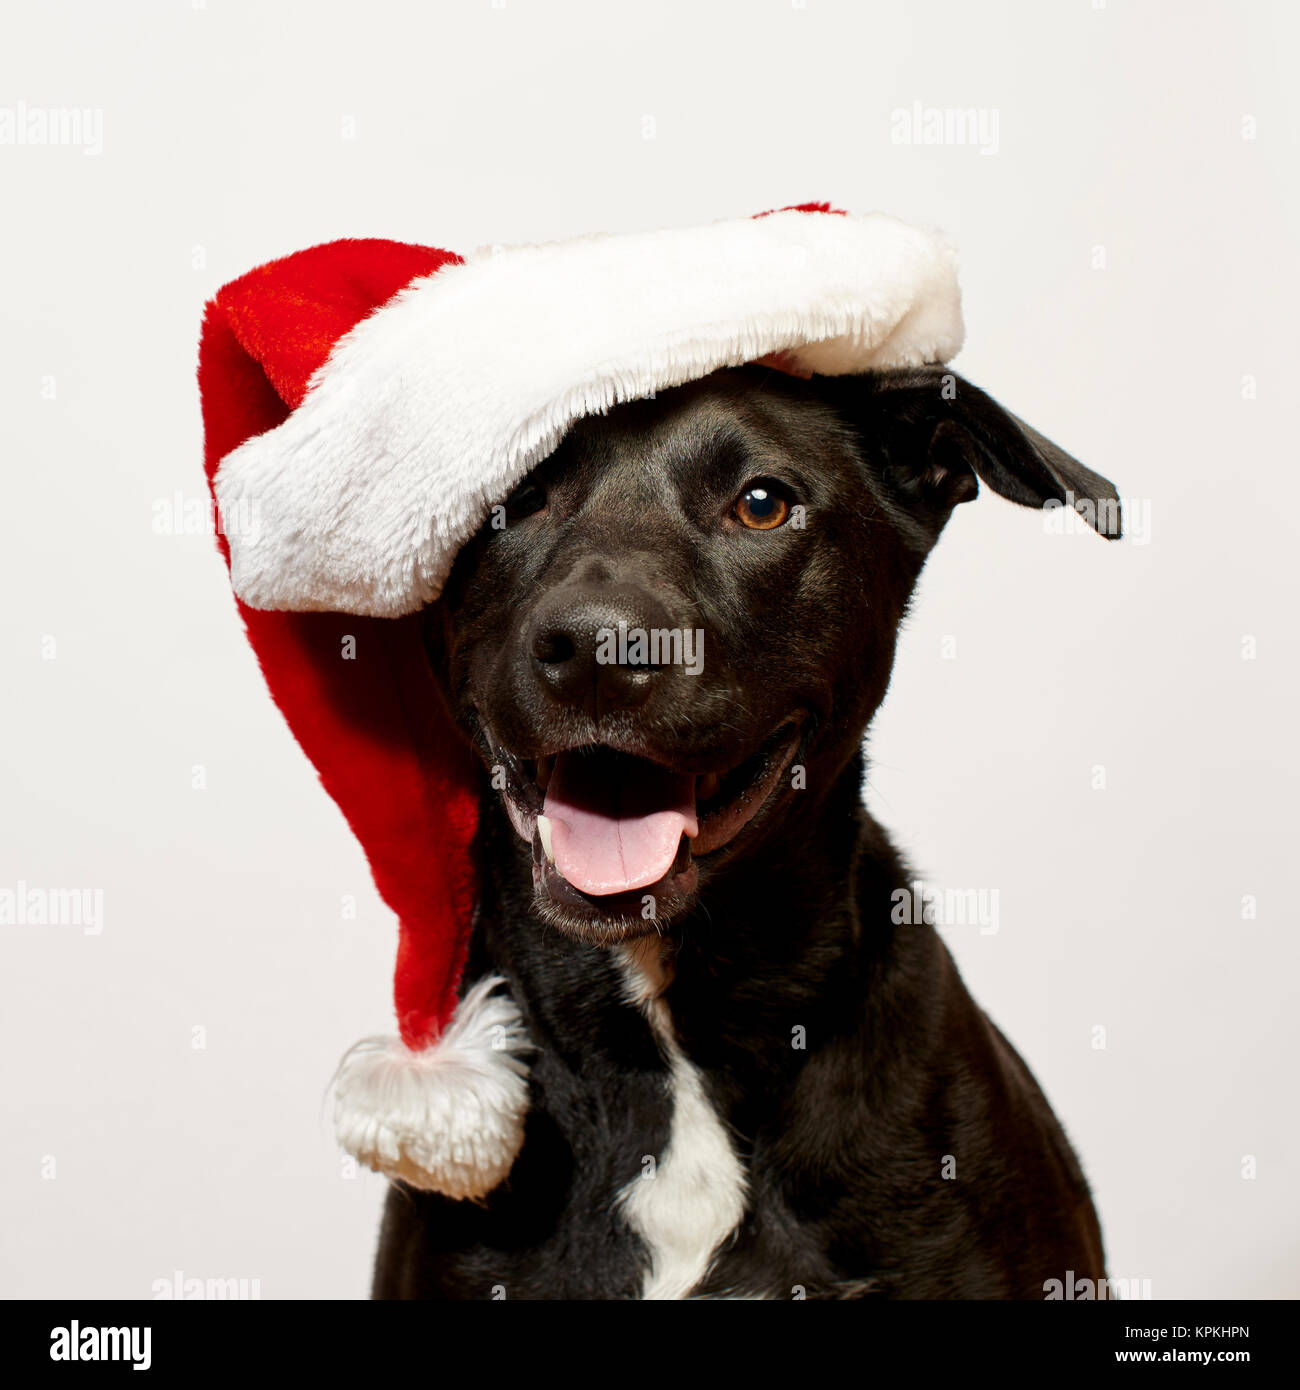 Dog close up wearing Santa Hat - Stock Image